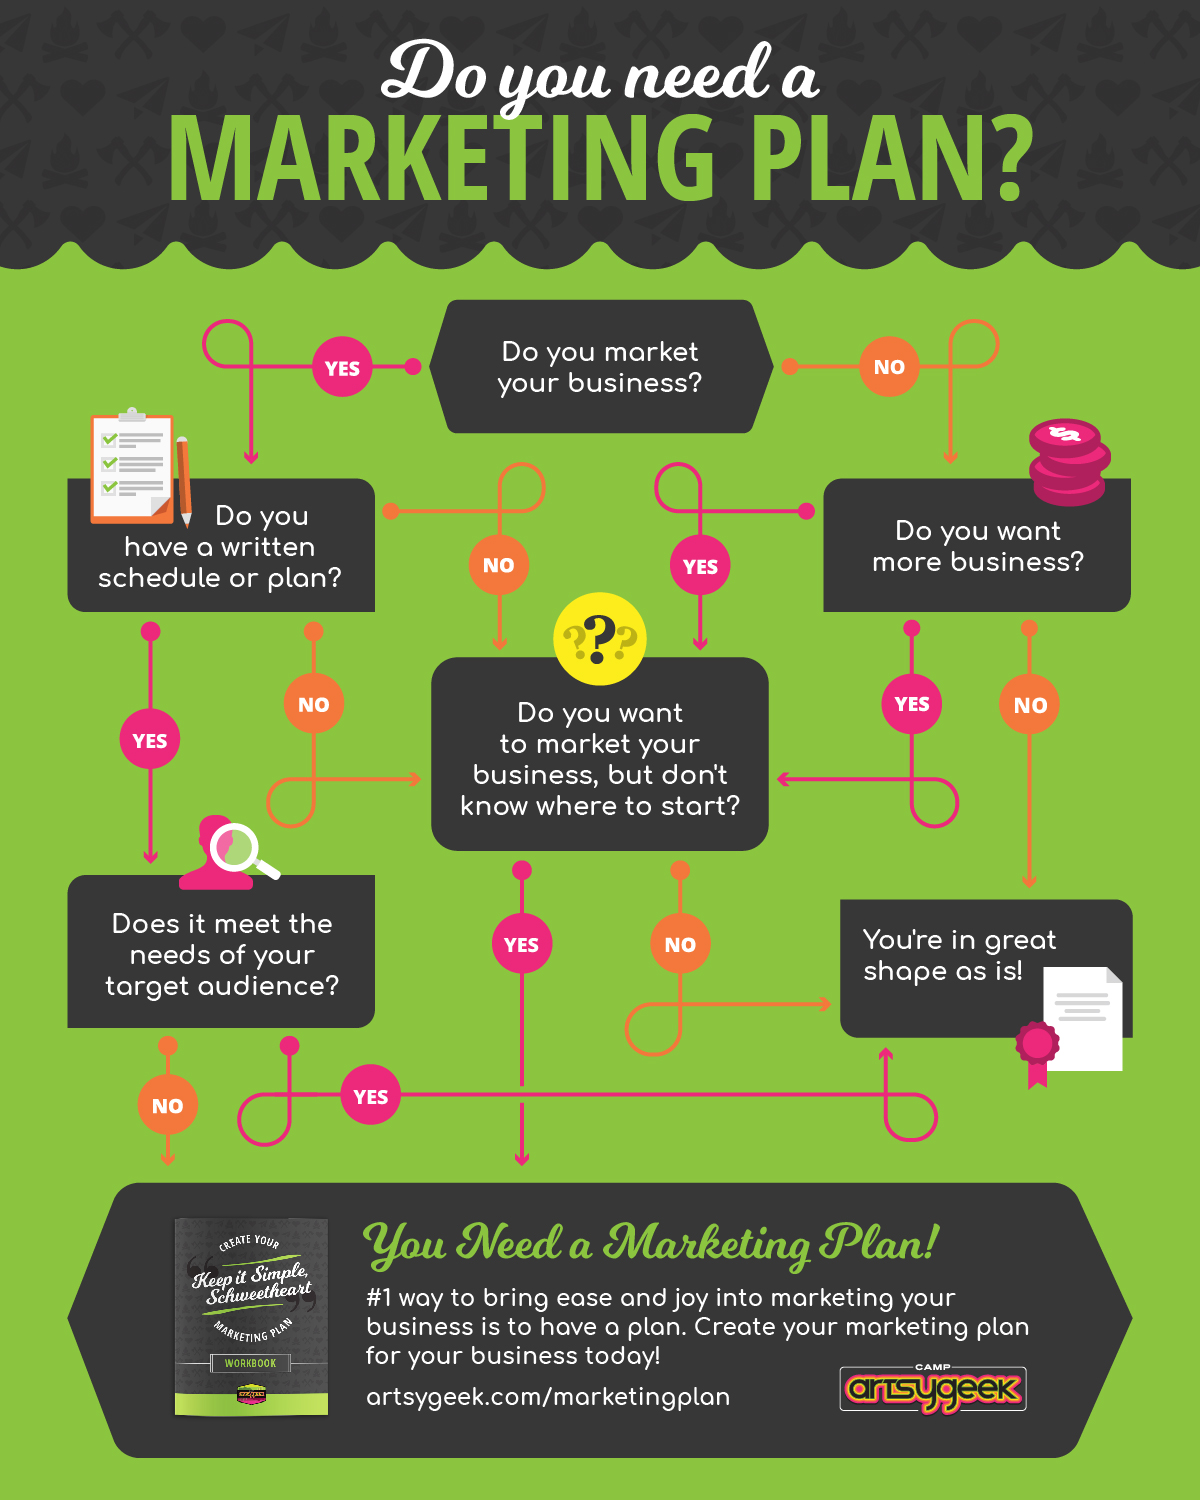 Do You Need a Marketing Plan? infographic